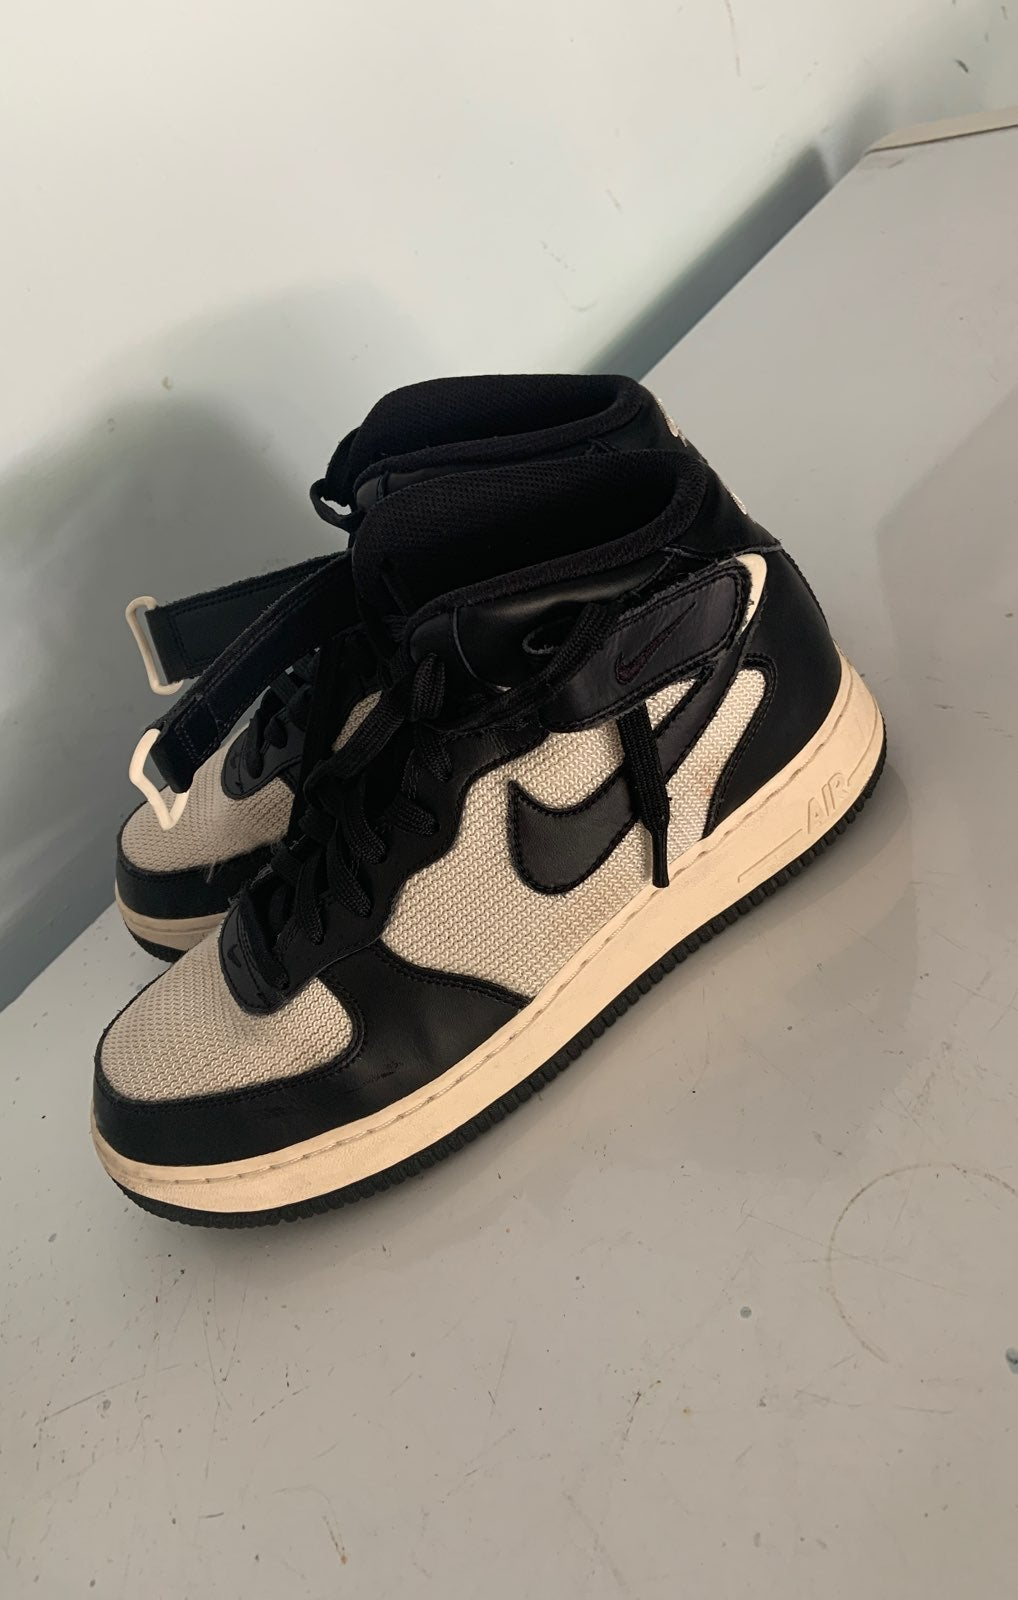 airforce 1 black and white